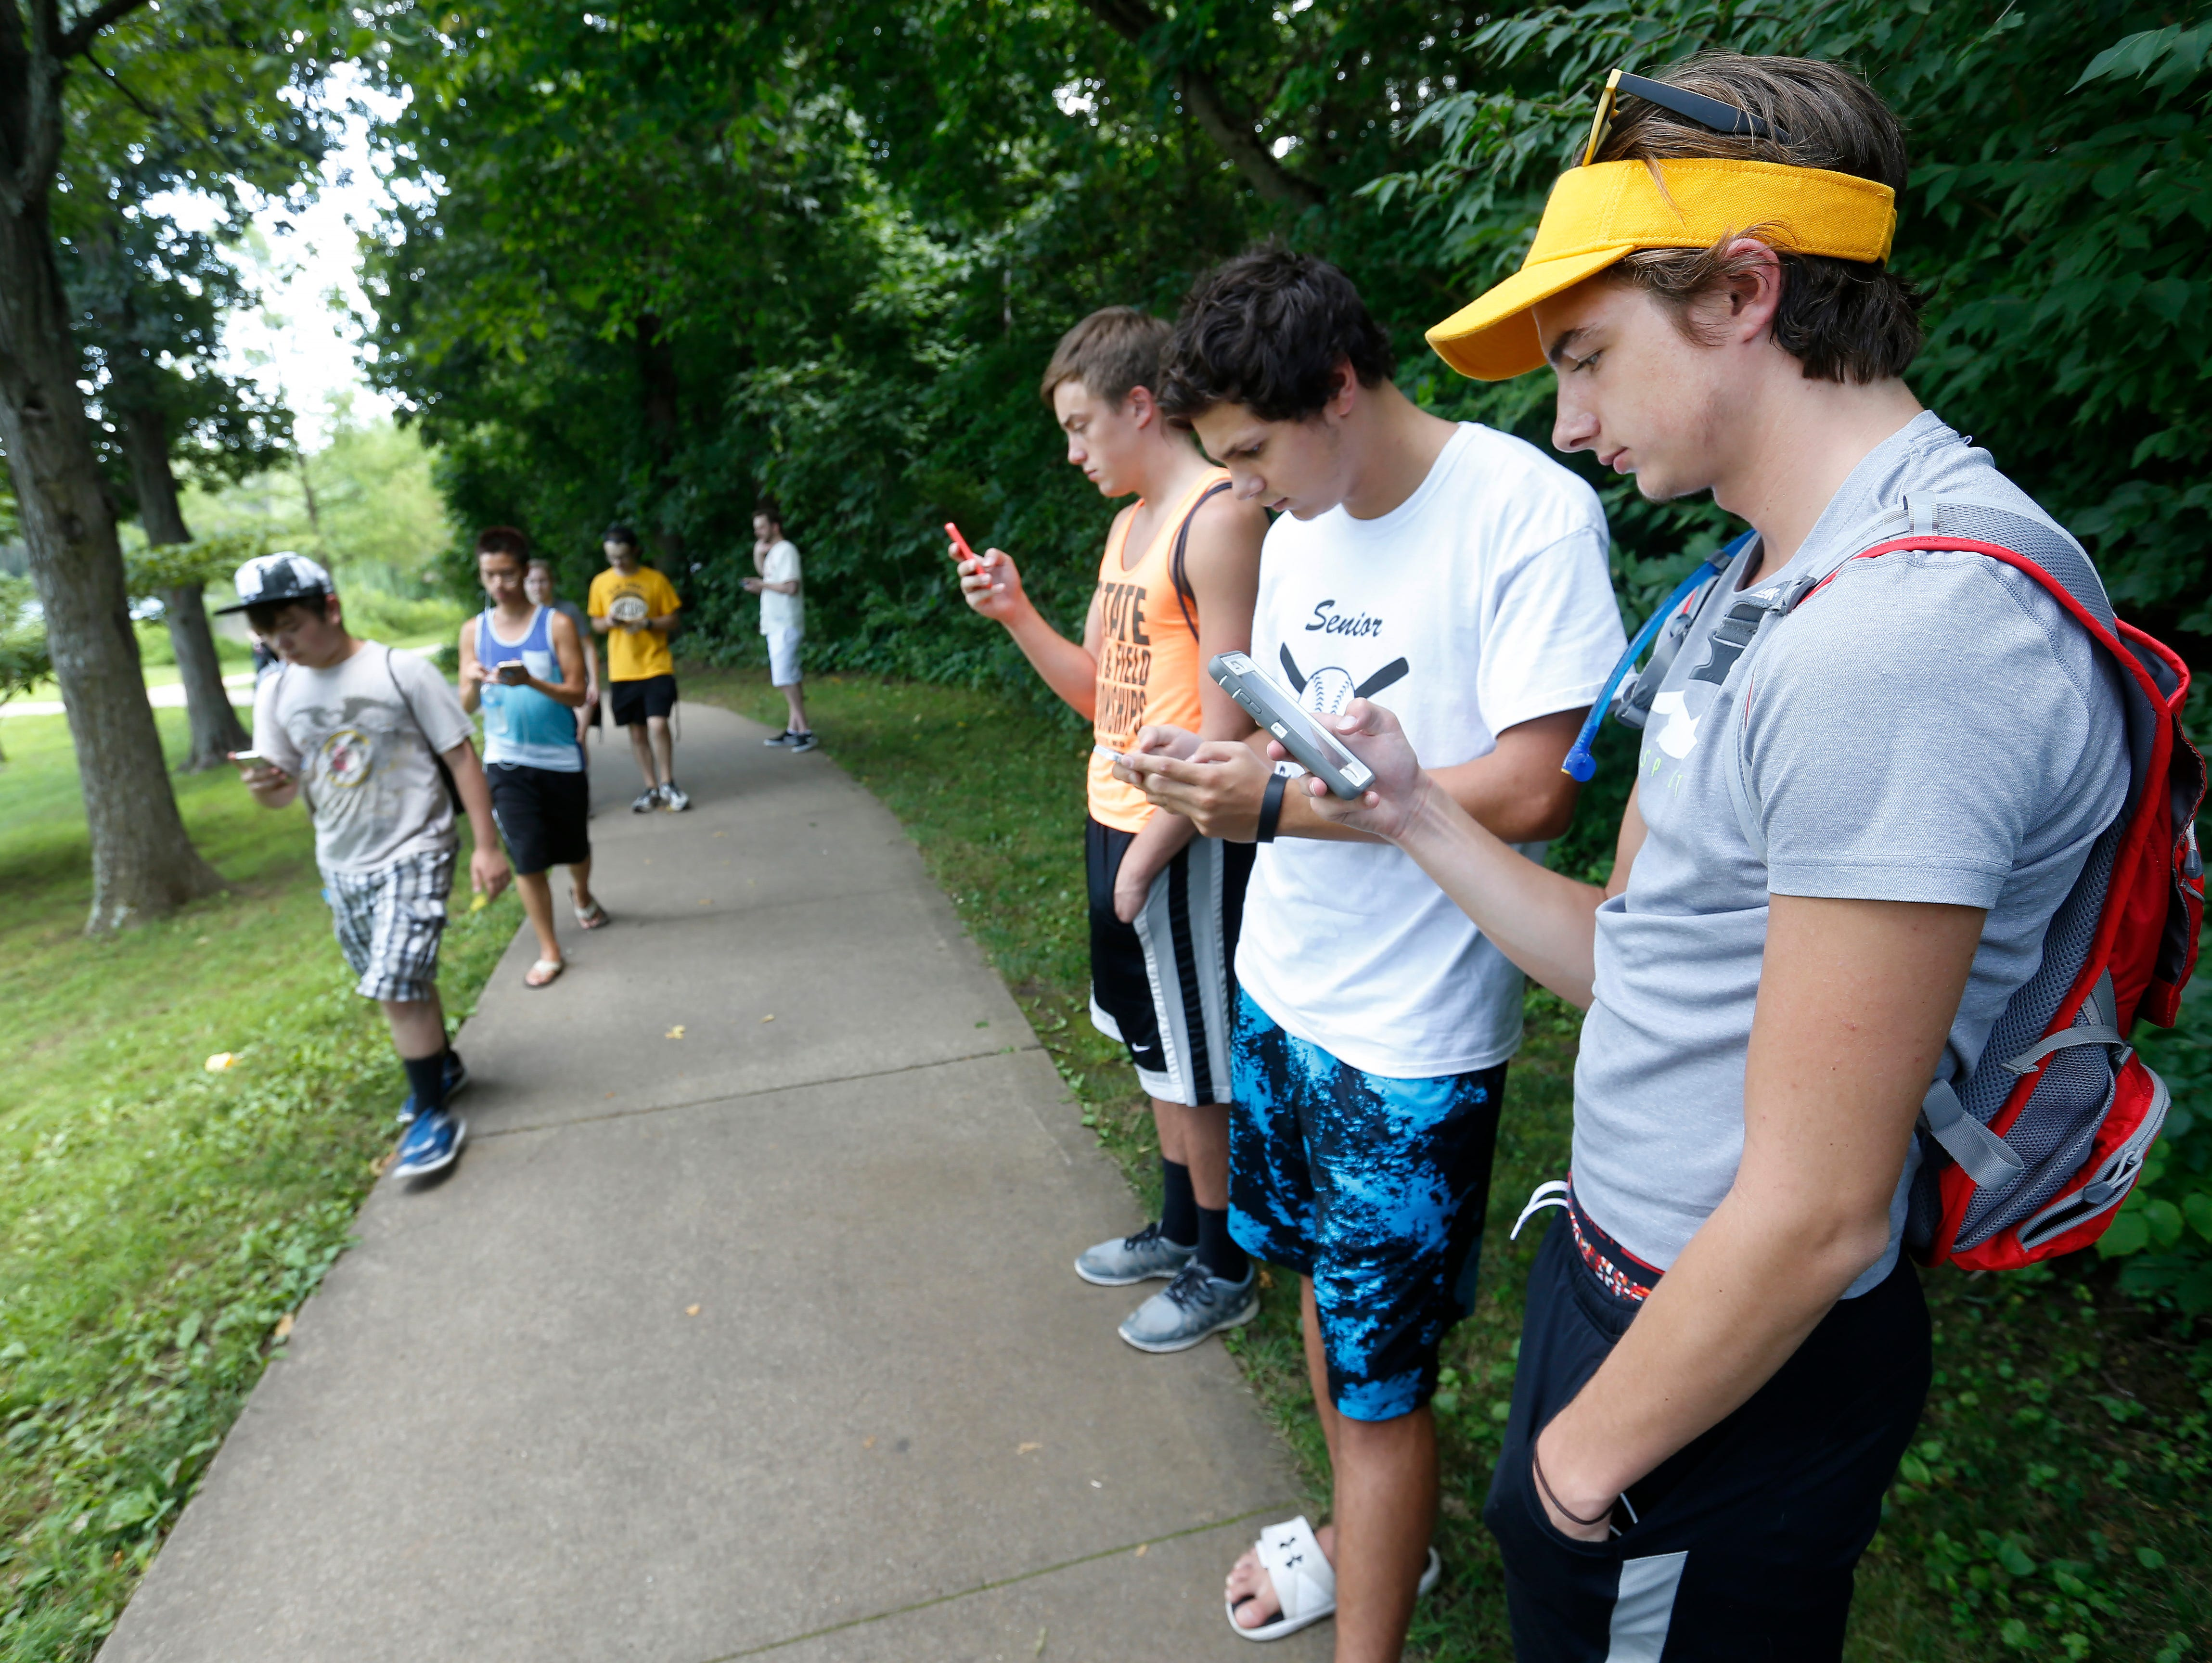 From right, Mitch Johnson, Kyle Cavanaugh and Logan Beach, all of Springfield, play Pokemon GO on their cell phones at Nathanael Greene Park on Monday, July 11, 2016.